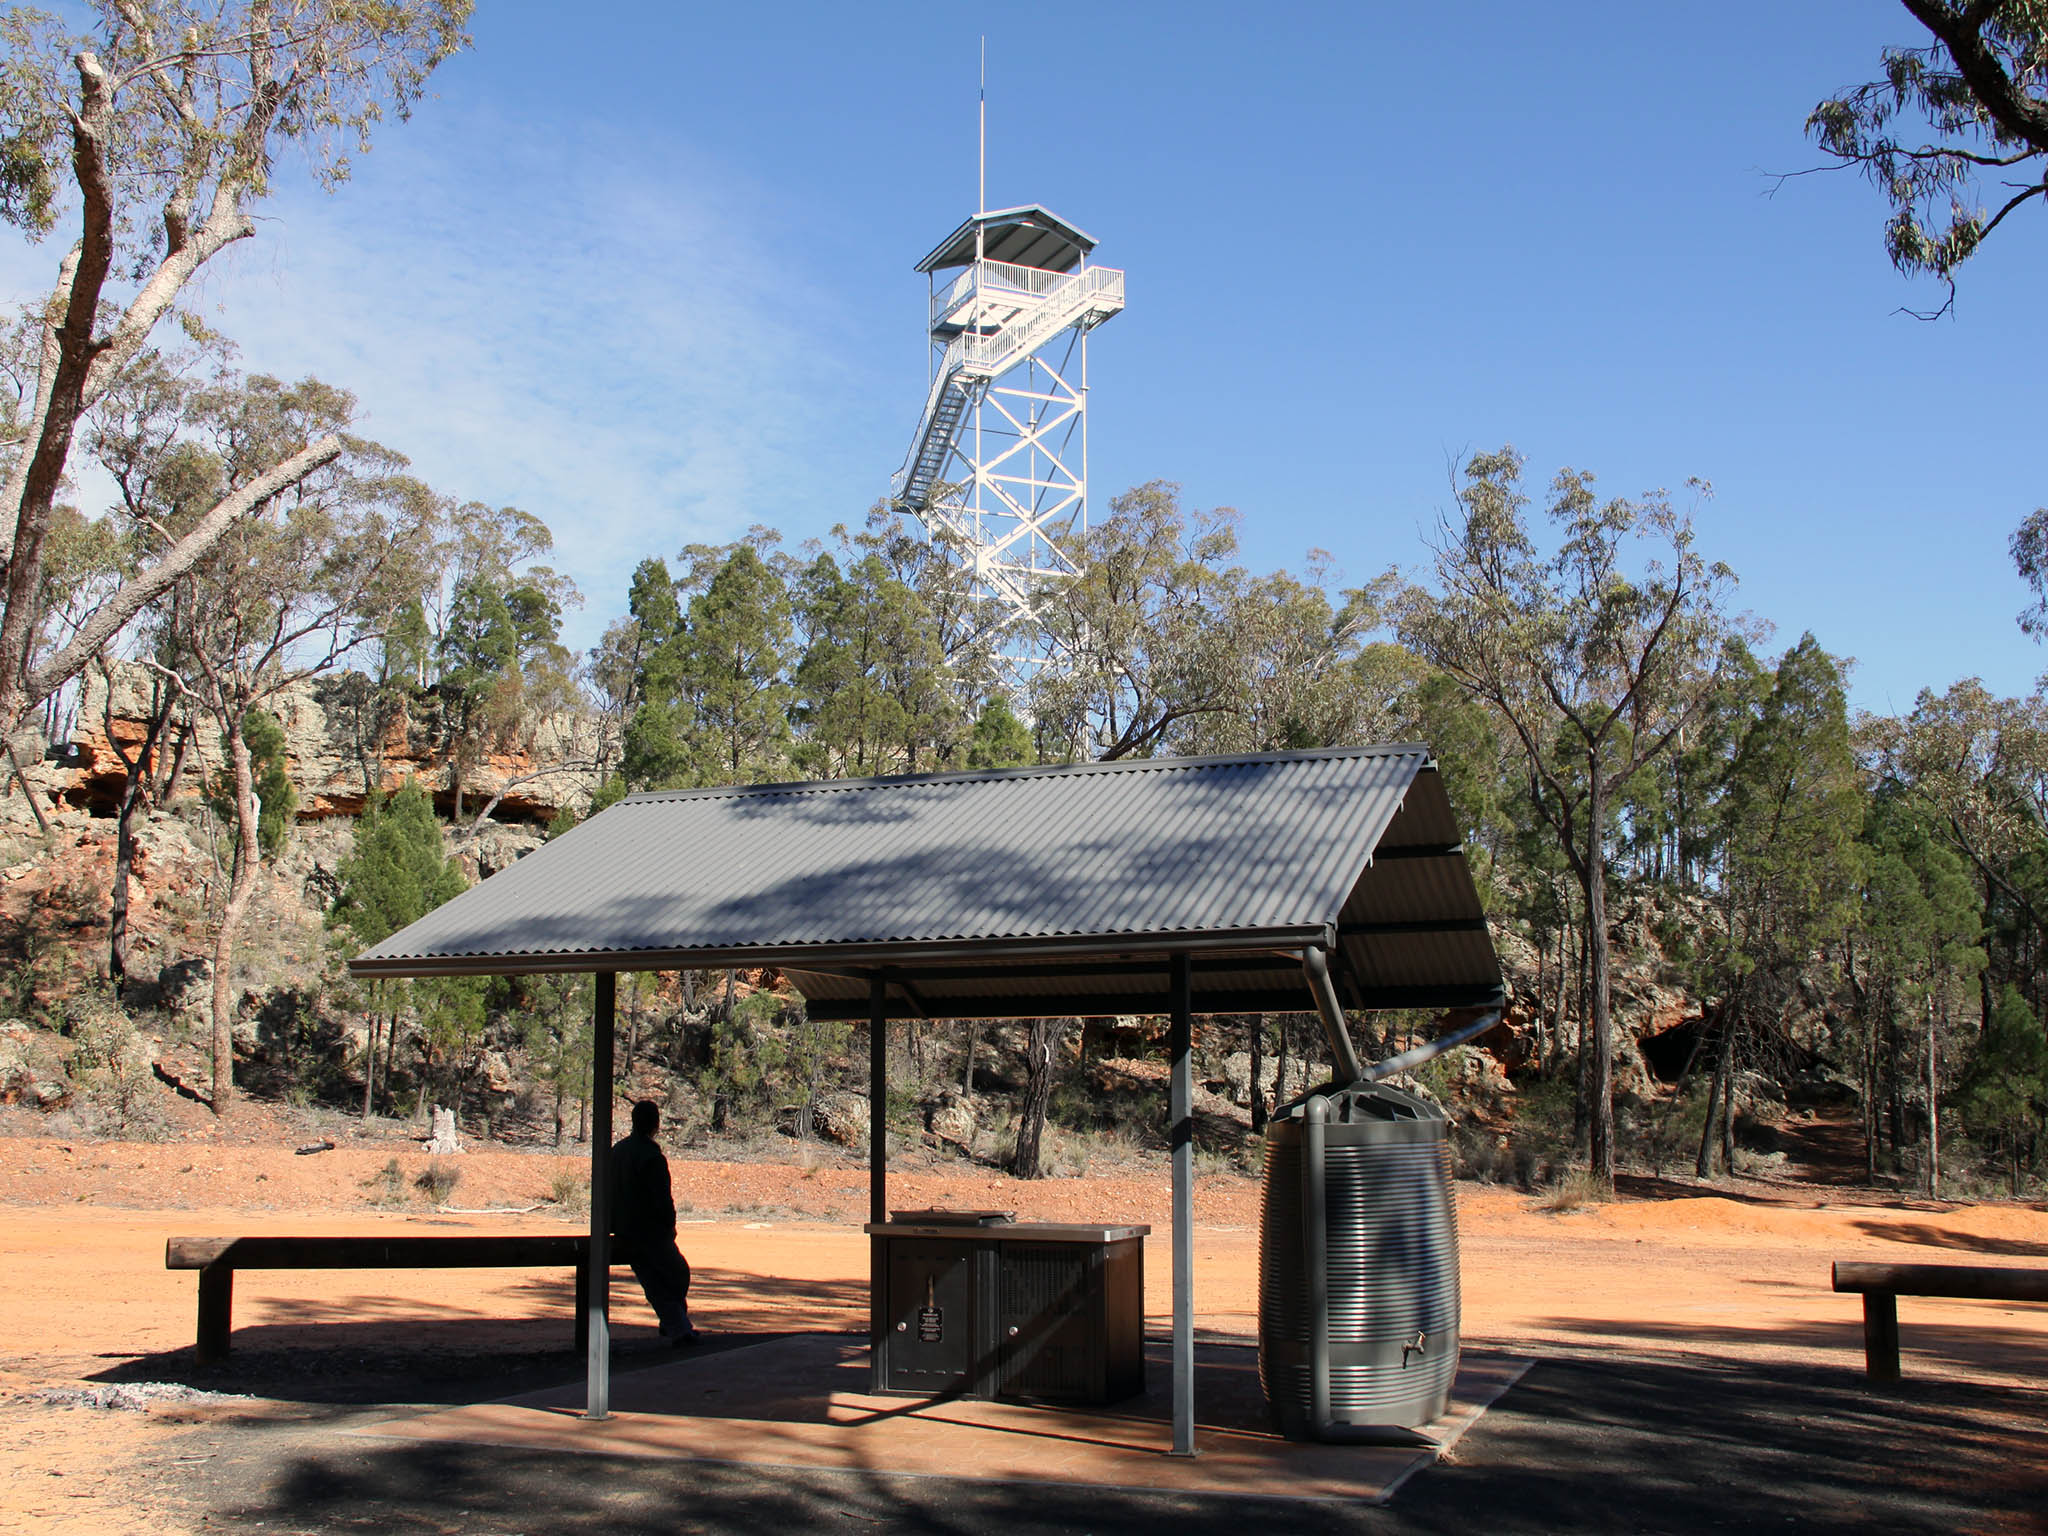 Salt Caves Visitor Area & Lookout Tower